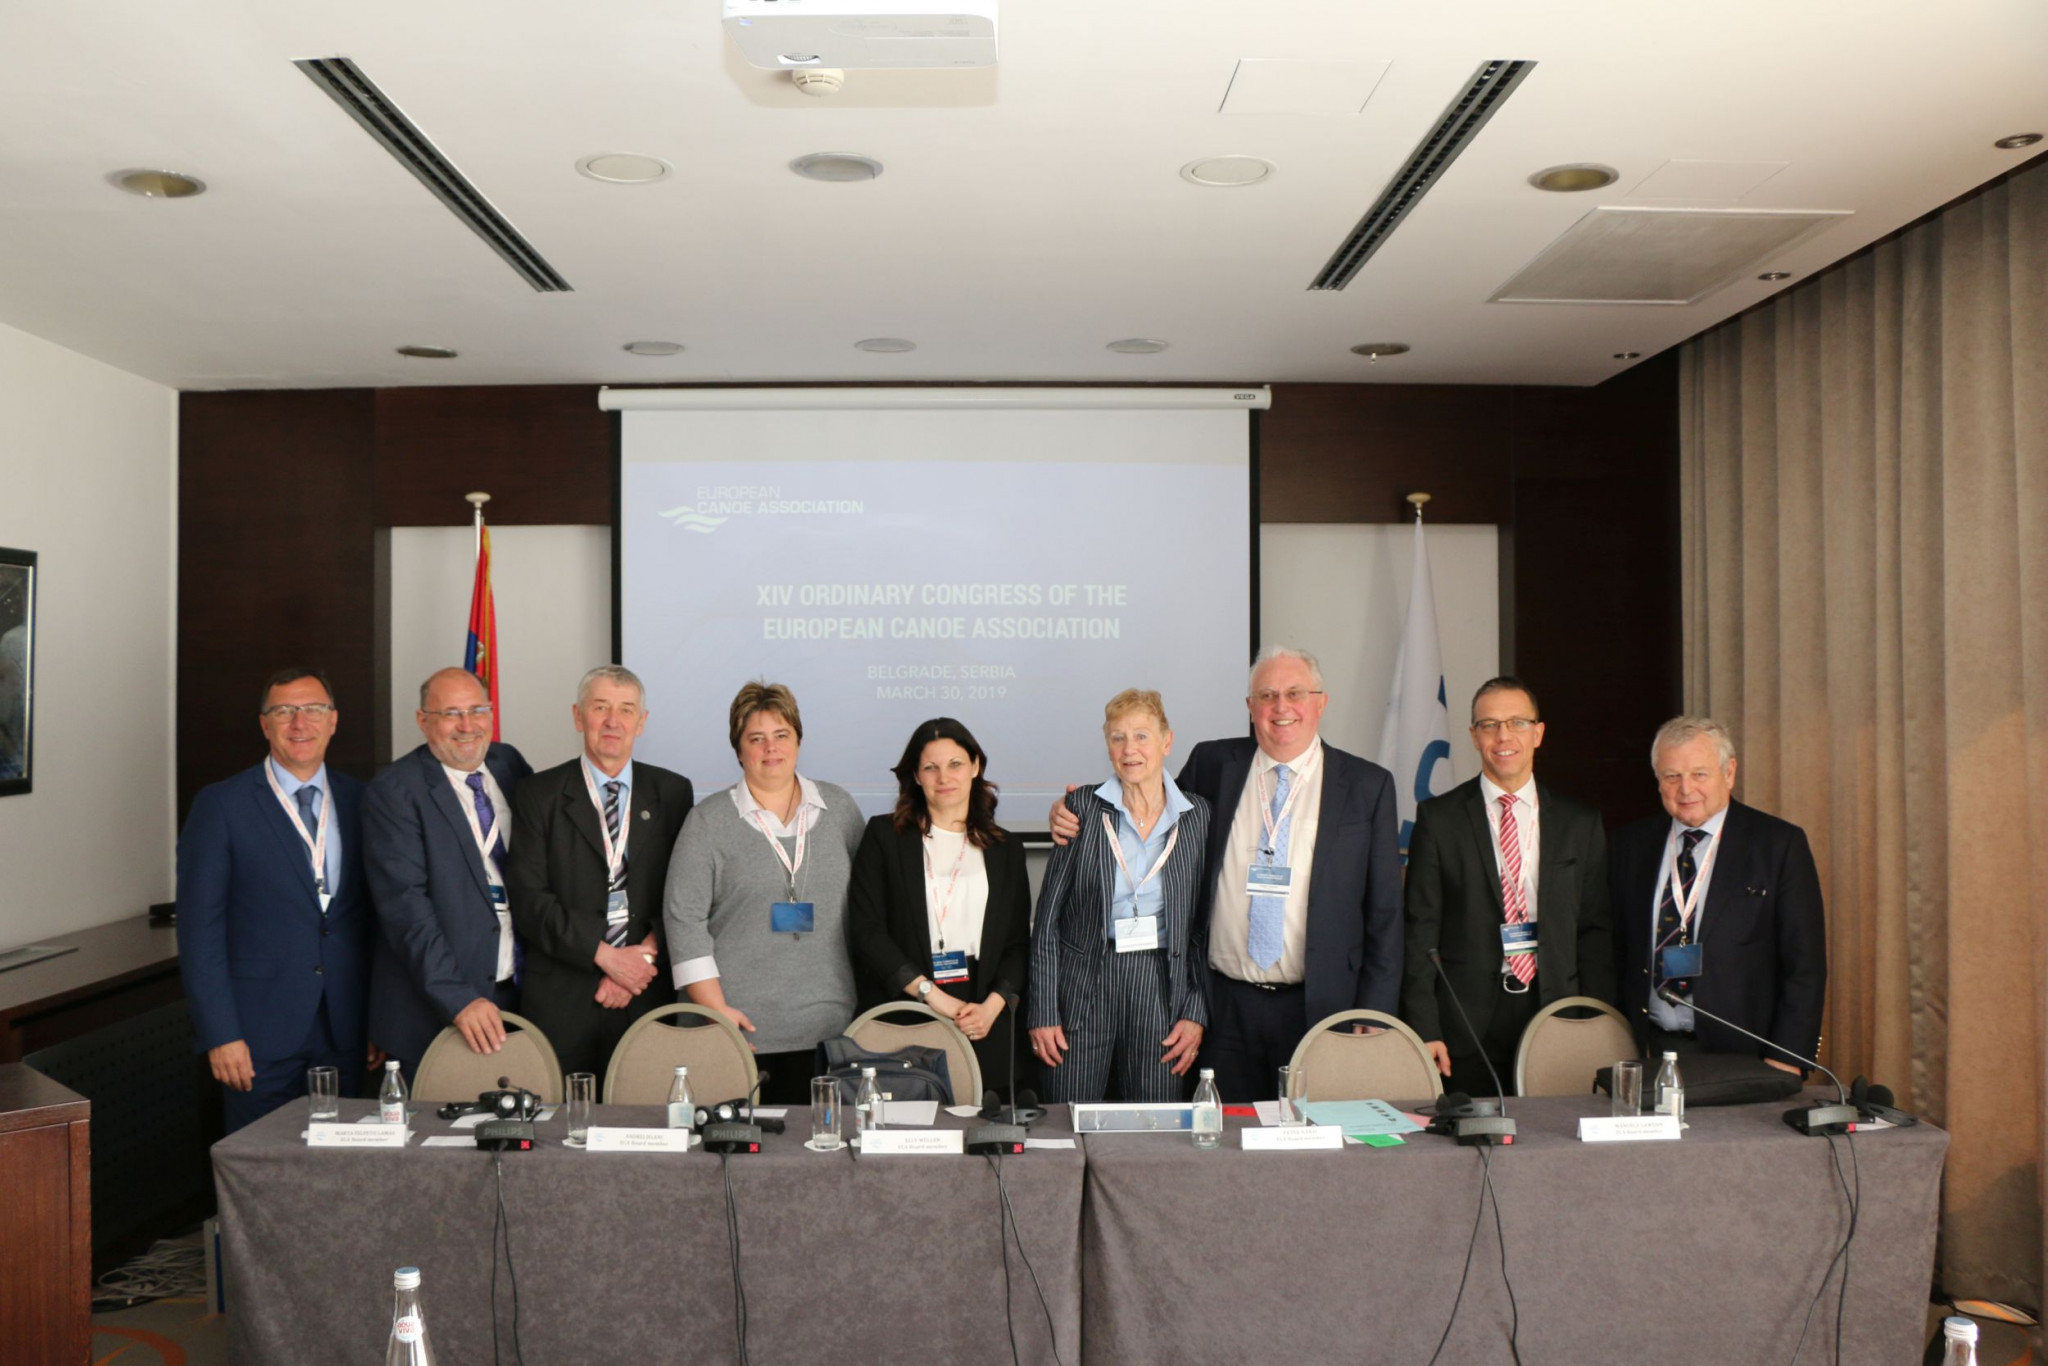 Woods re-elected unopposed as European Canoe Association President